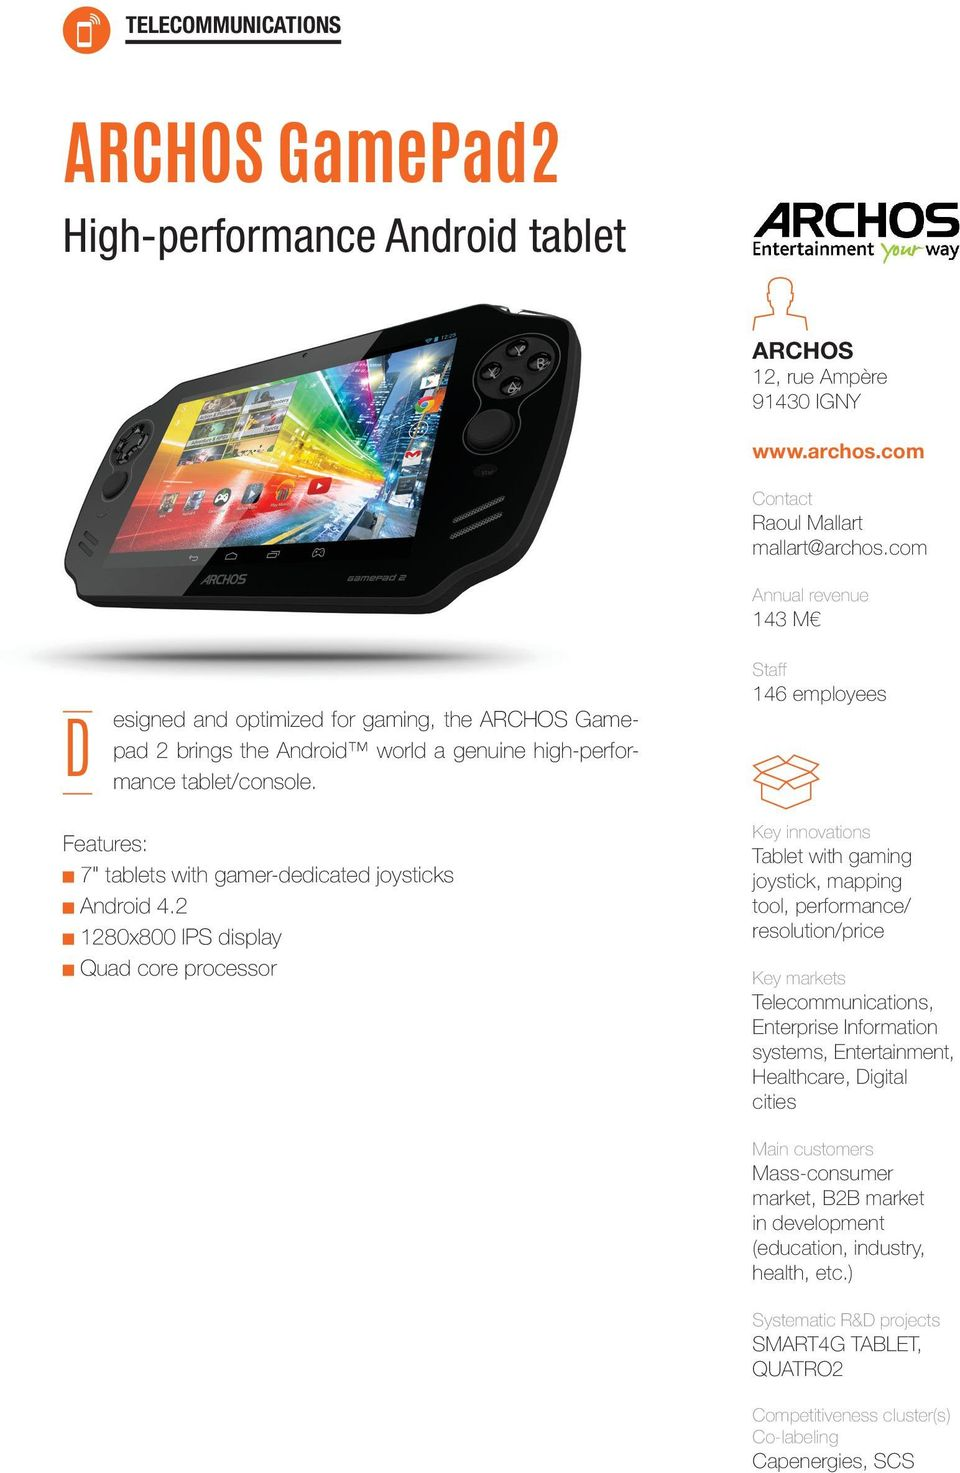 2 1280x800 IPS display Quad core processor Tablet with gaming joystick, mapping tool, performance/ resolution/price Enterprise Information systems, Entertainment, Healthcare,